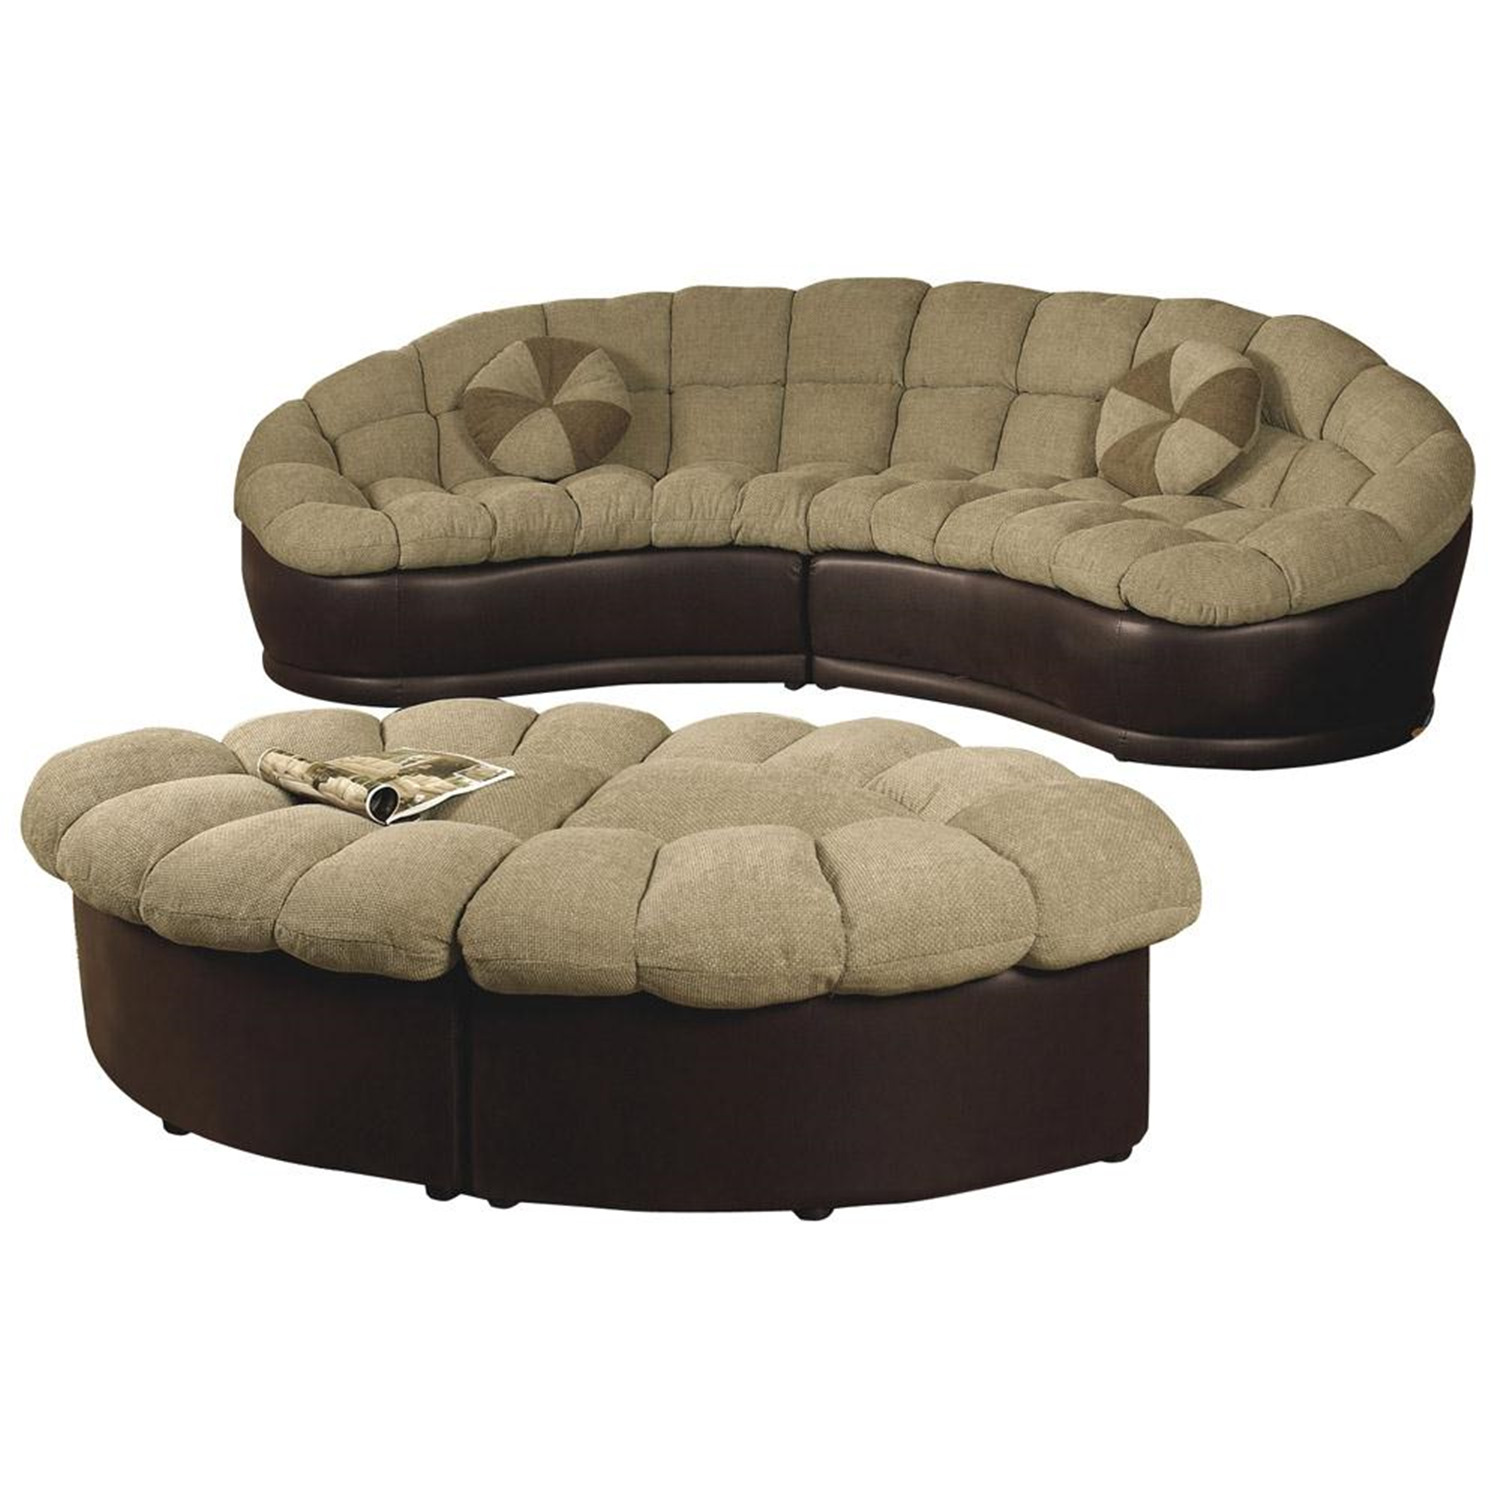 Love Seat And Ottoman Set OJCommerce